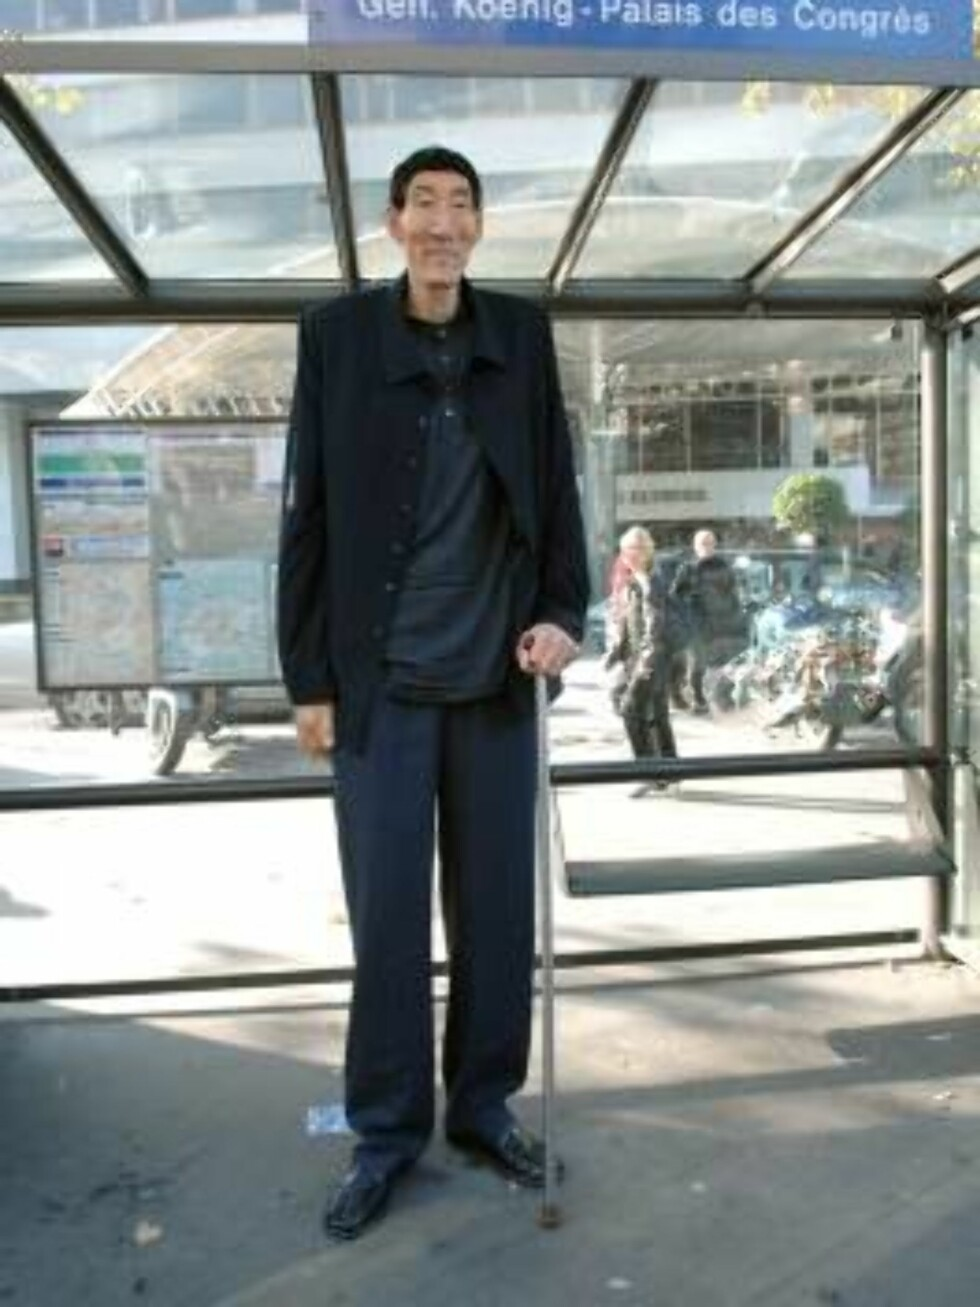 PARIS 2006-10-10.  China's Xi Shun, the tallest man in the world with a height of 2,36 meters (7.74 ft), meets with the press at the Concorde Lafayette hotel in Paris, France, on October 10, 2006. He is in France to help promote the new Guinness World Rec Foto: Stella Pictures